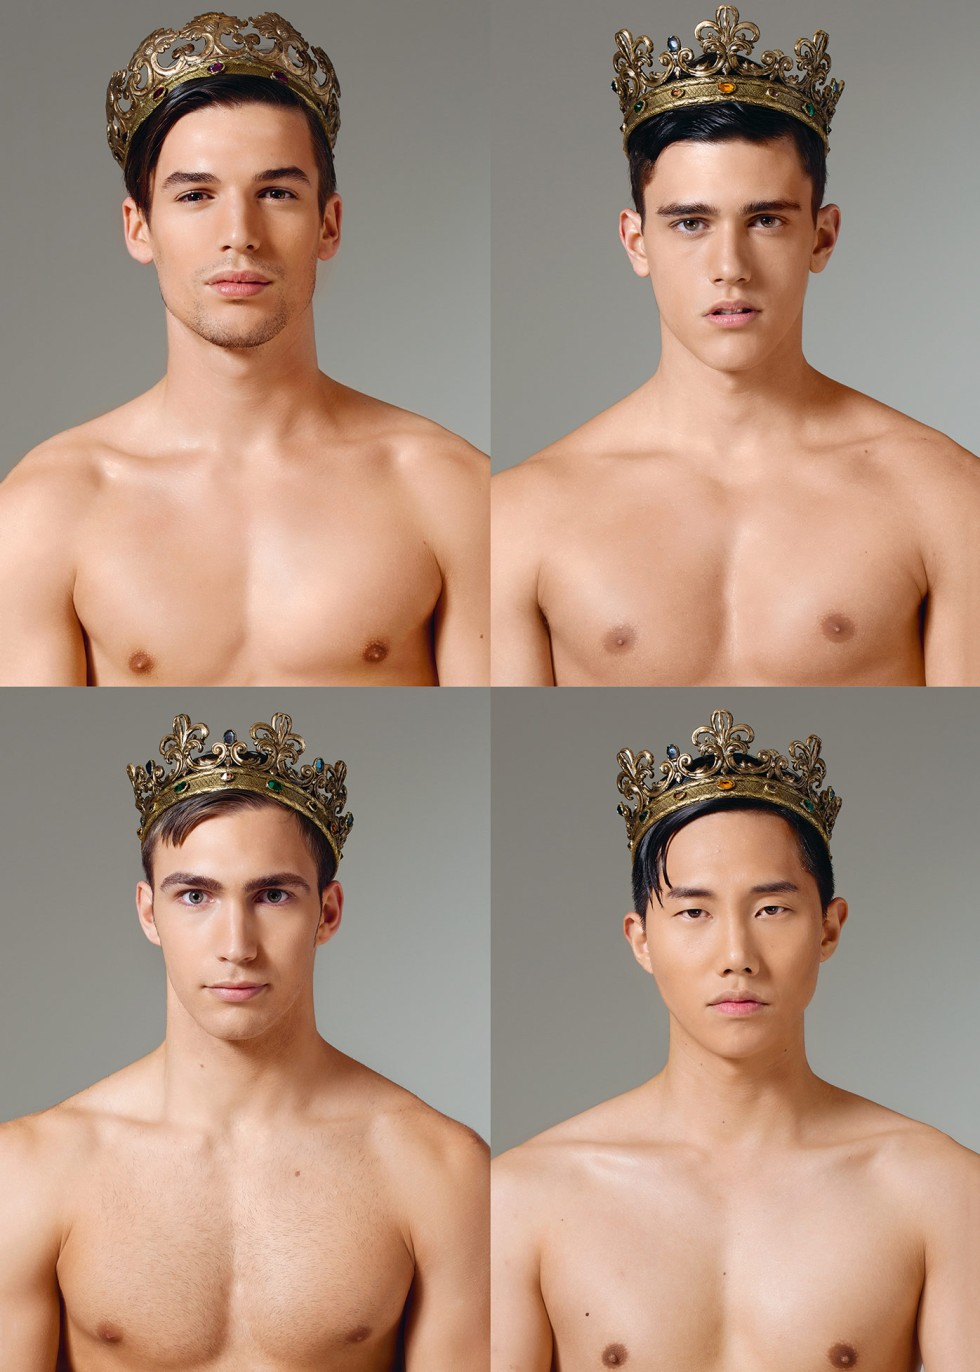 Crowns have long been a heraldic symbol of royalty, courage and power and along with the industrious, loyal and kind icon of the bee, these two emblems have been unified and adopted as a leitmotif of the Dolce&Gabbana in the Fall Winter 2015-16 menswear collection. ‪#‎DGmen‬ Discover the collection http://bit.ly/1eFAYCj